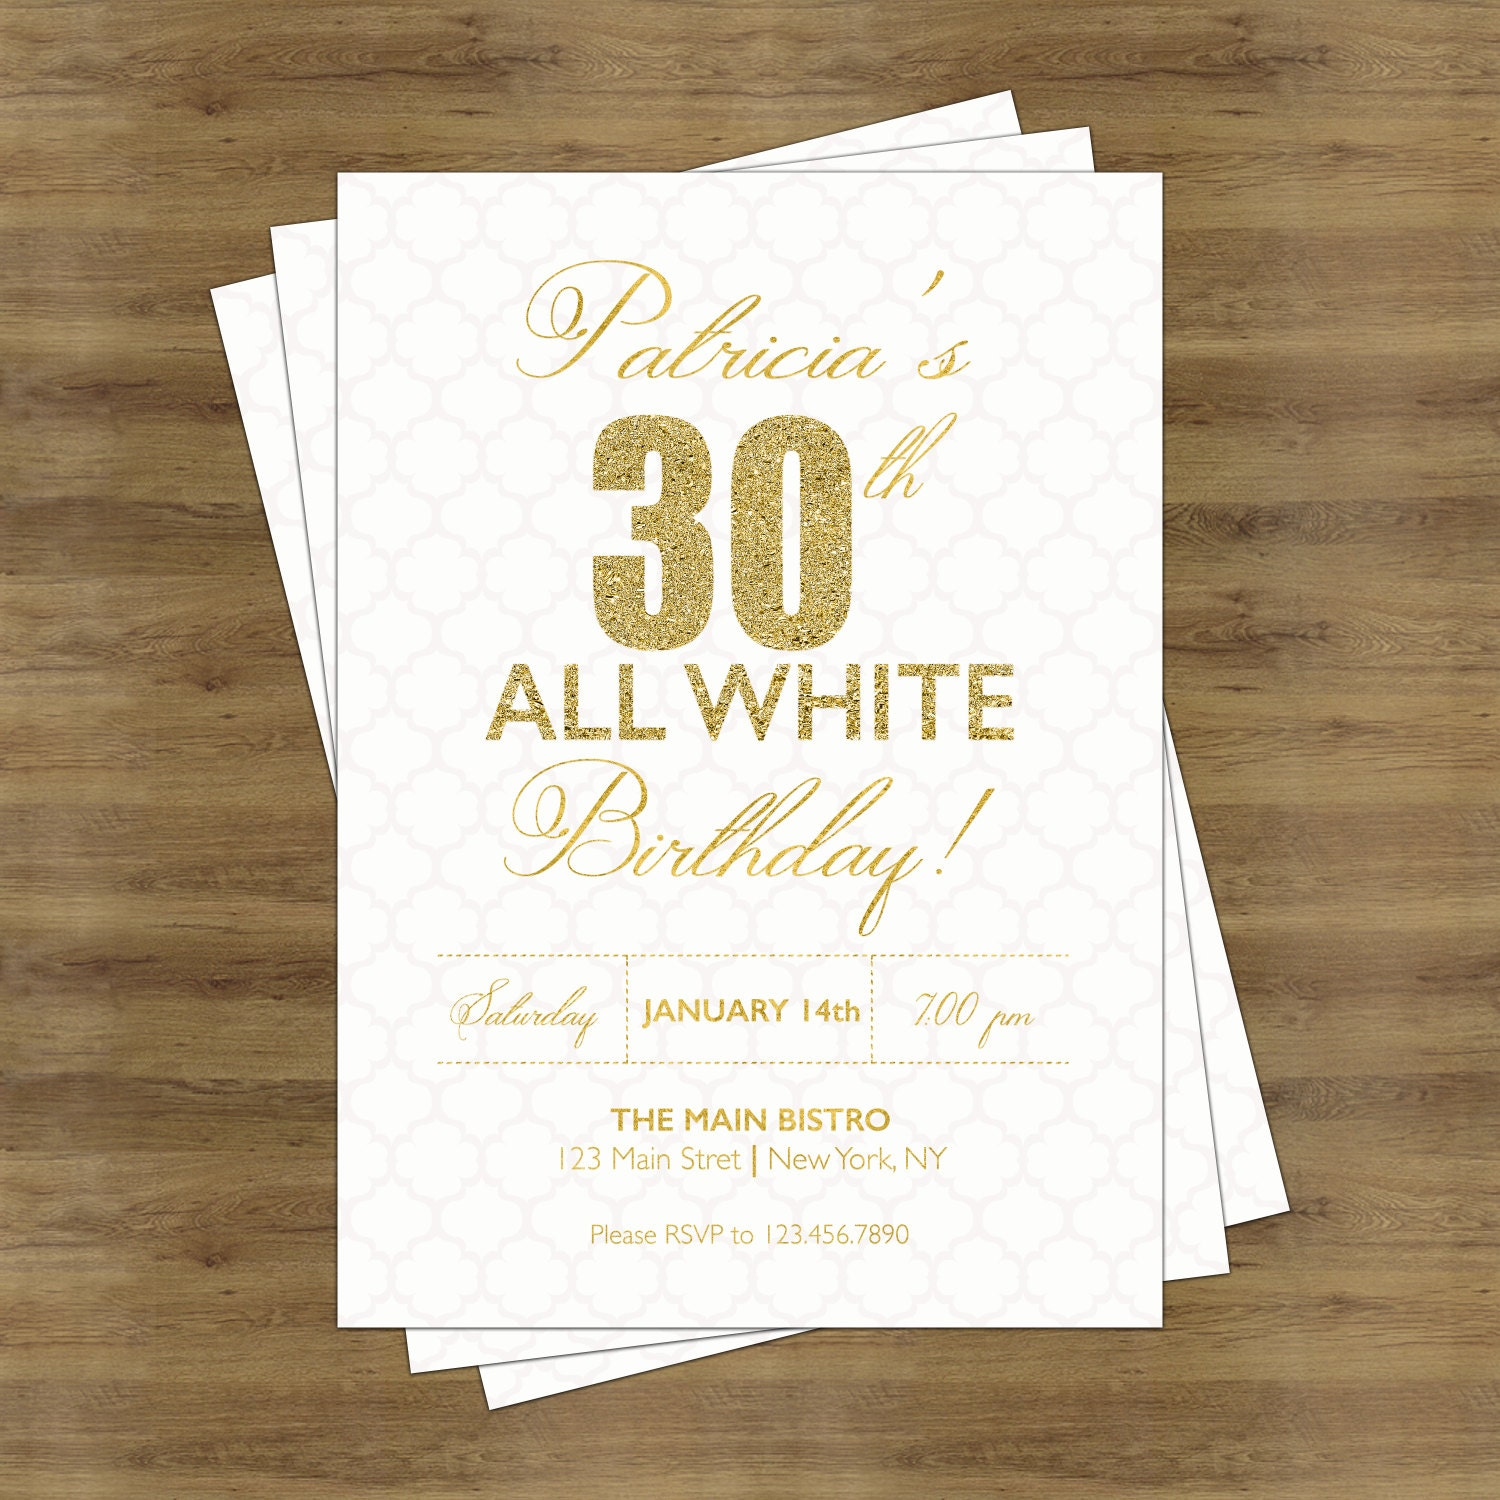 White Party Invitation White and Gold Invitations Adult